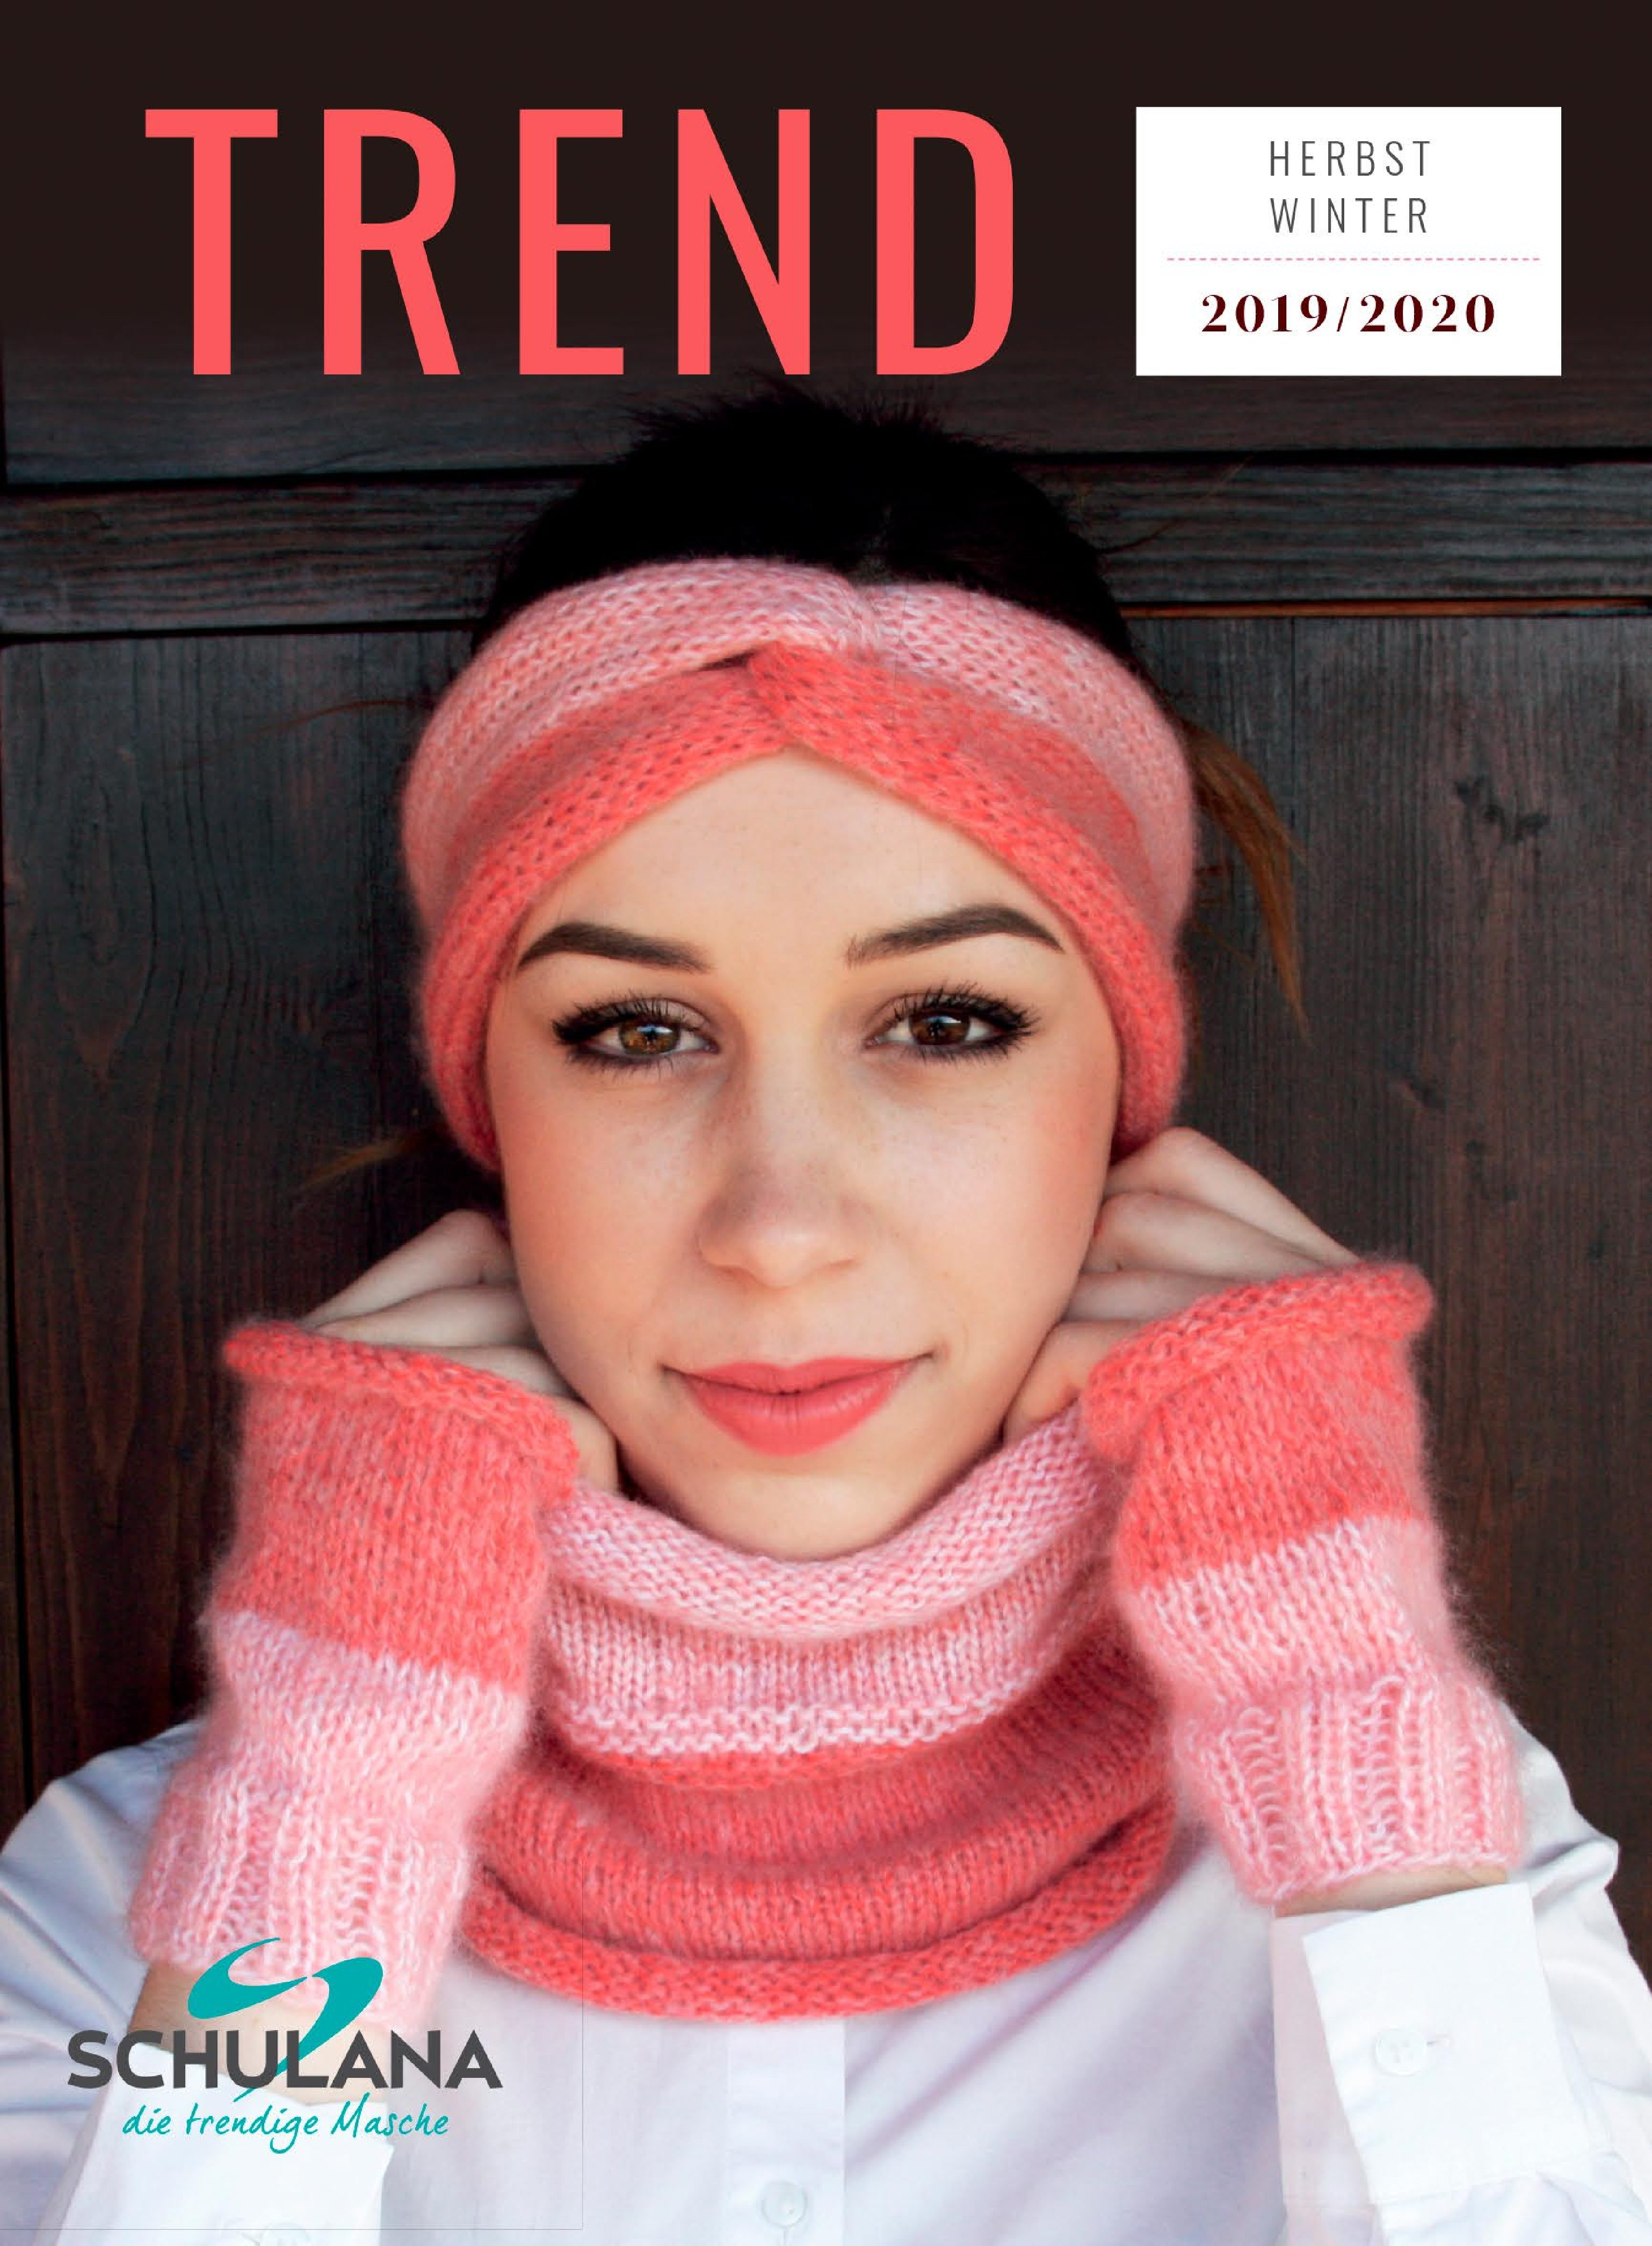 Schulana_Trend_19-20_Cover_Web